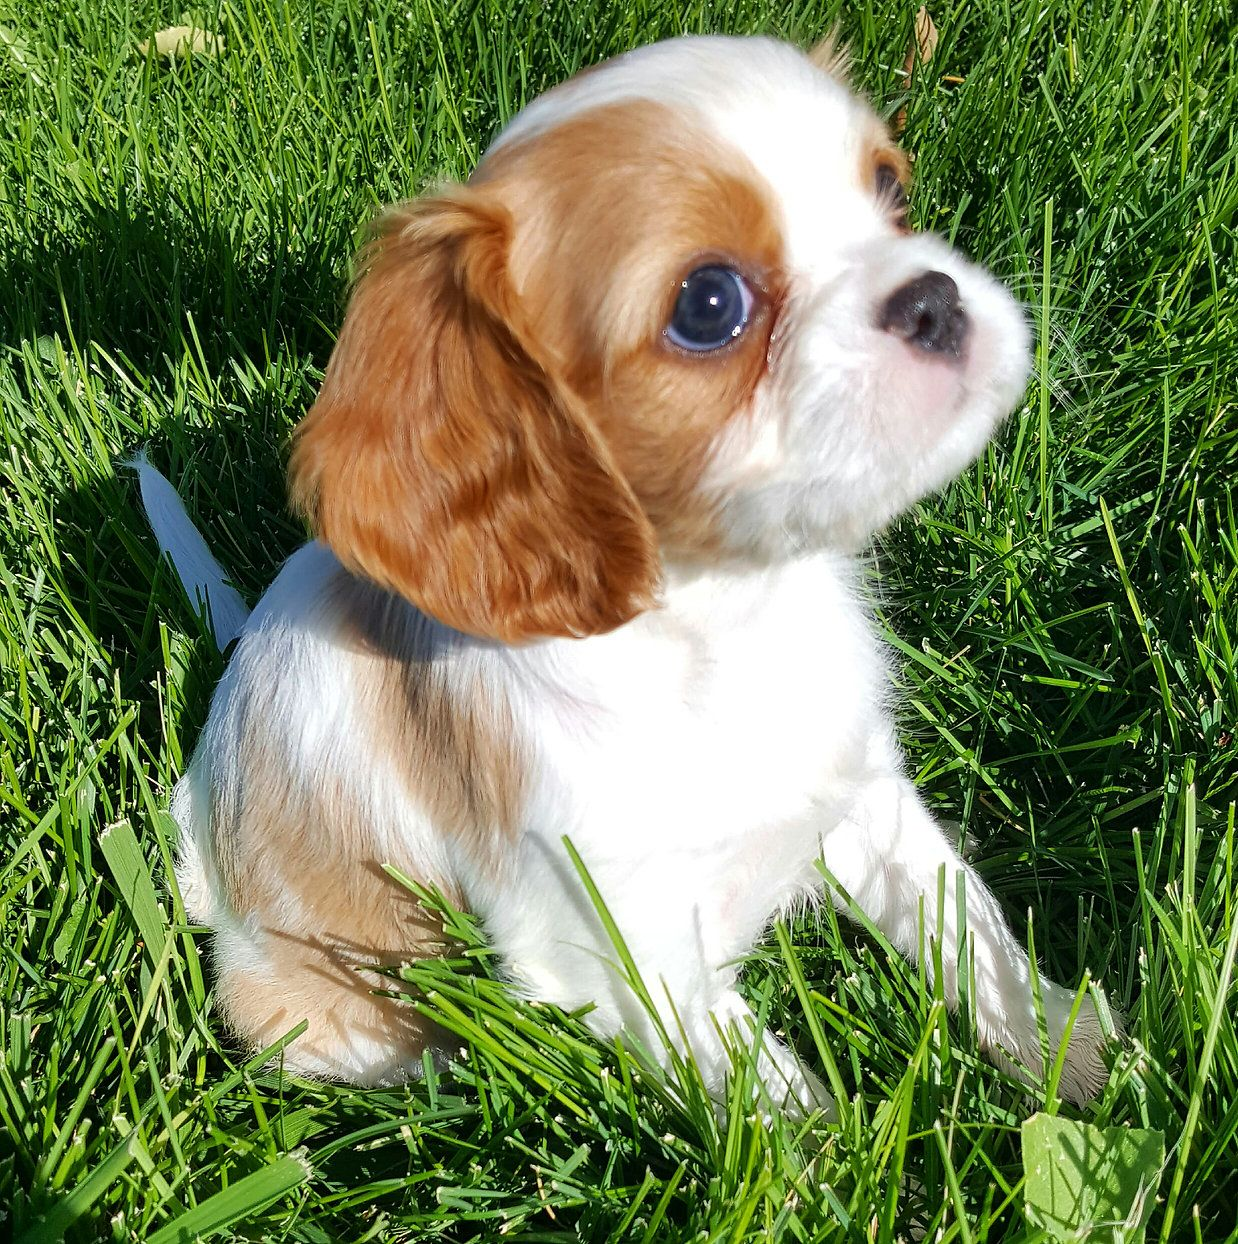 Akc Champion Pedigree Cavalier King Charles Spaniel Puppies For